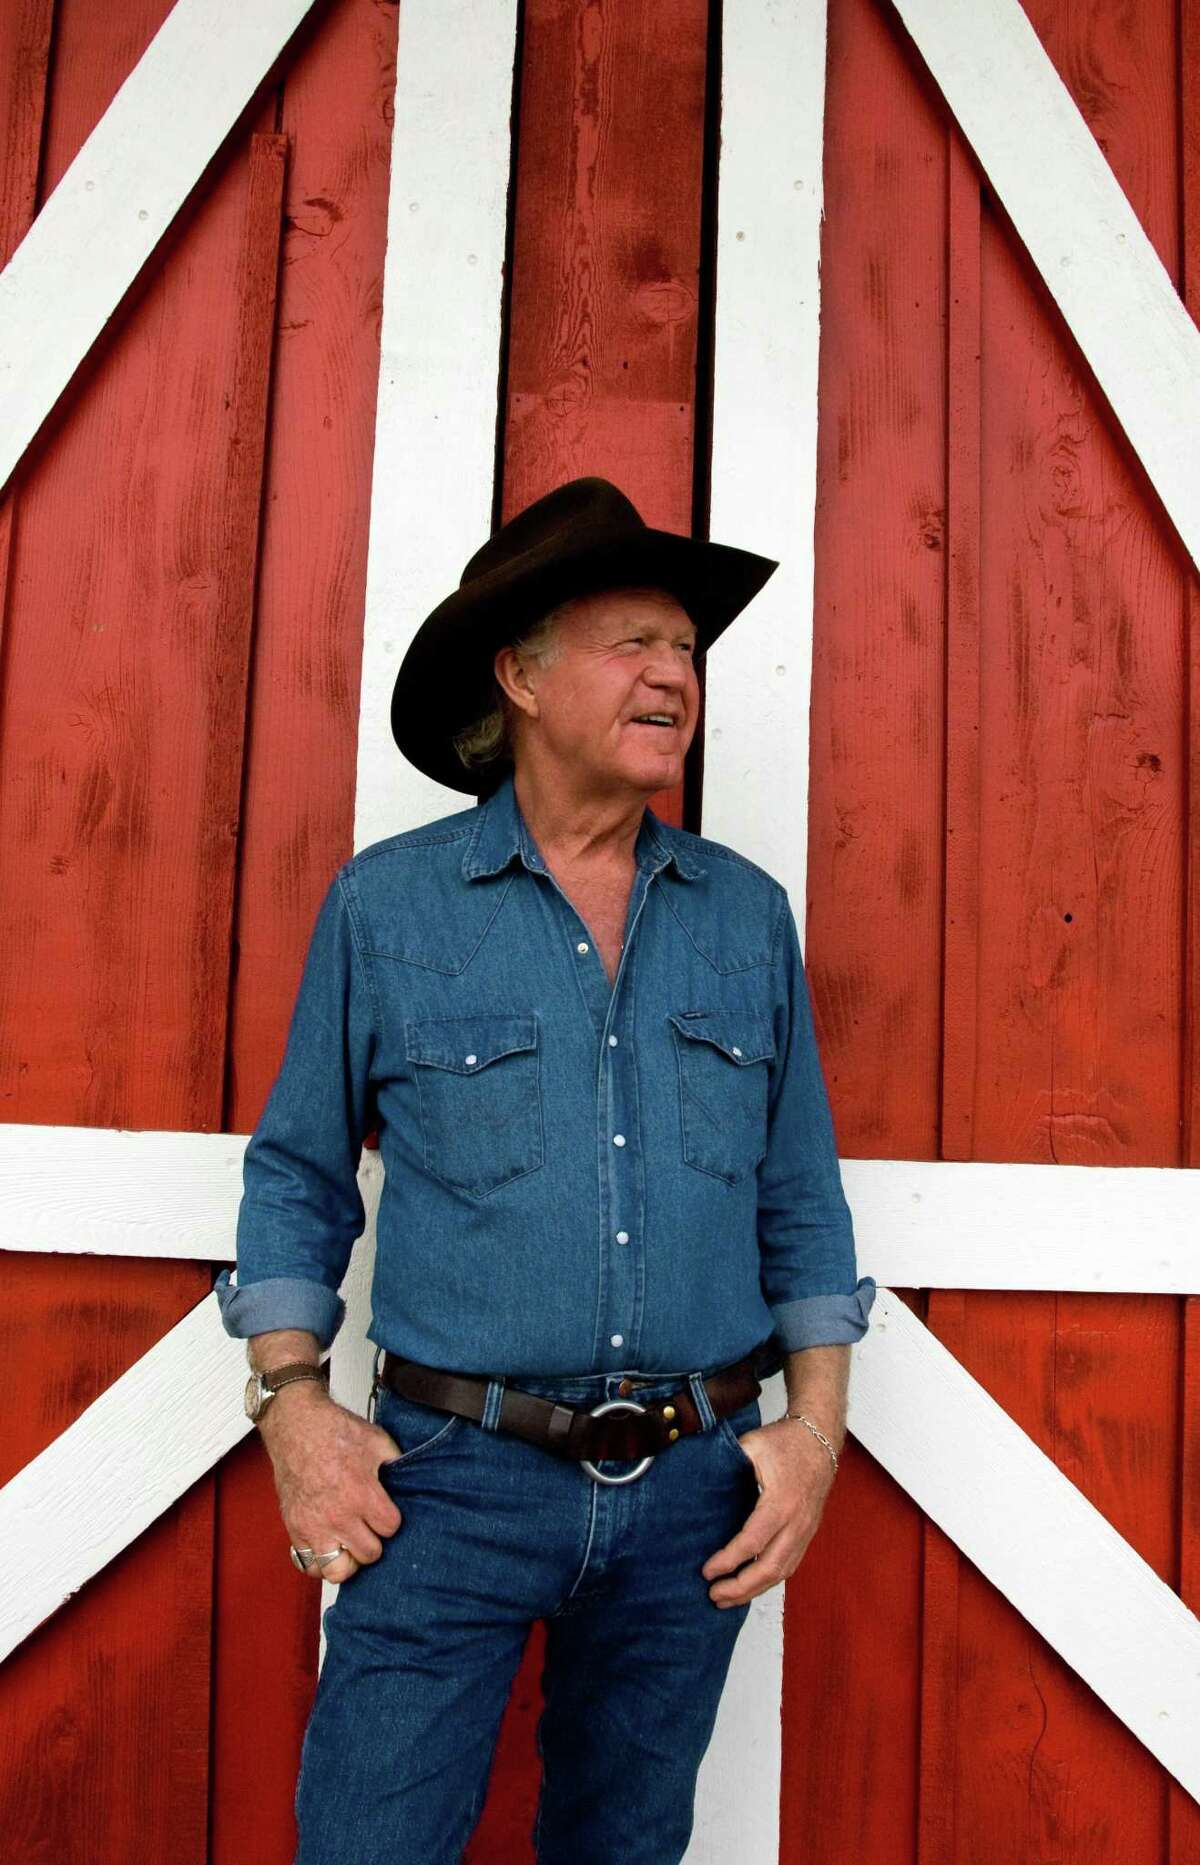 """Billy Joe Shaver, 68, a prolific songwriter living in Waco, Texas, poses outside the Leon Springs Dance Hall in San Antonio, Texas on Friday, August 17, 2007. His new album, entitled """"Everybody's Brother,"""" comes out on August 25, 2007."""